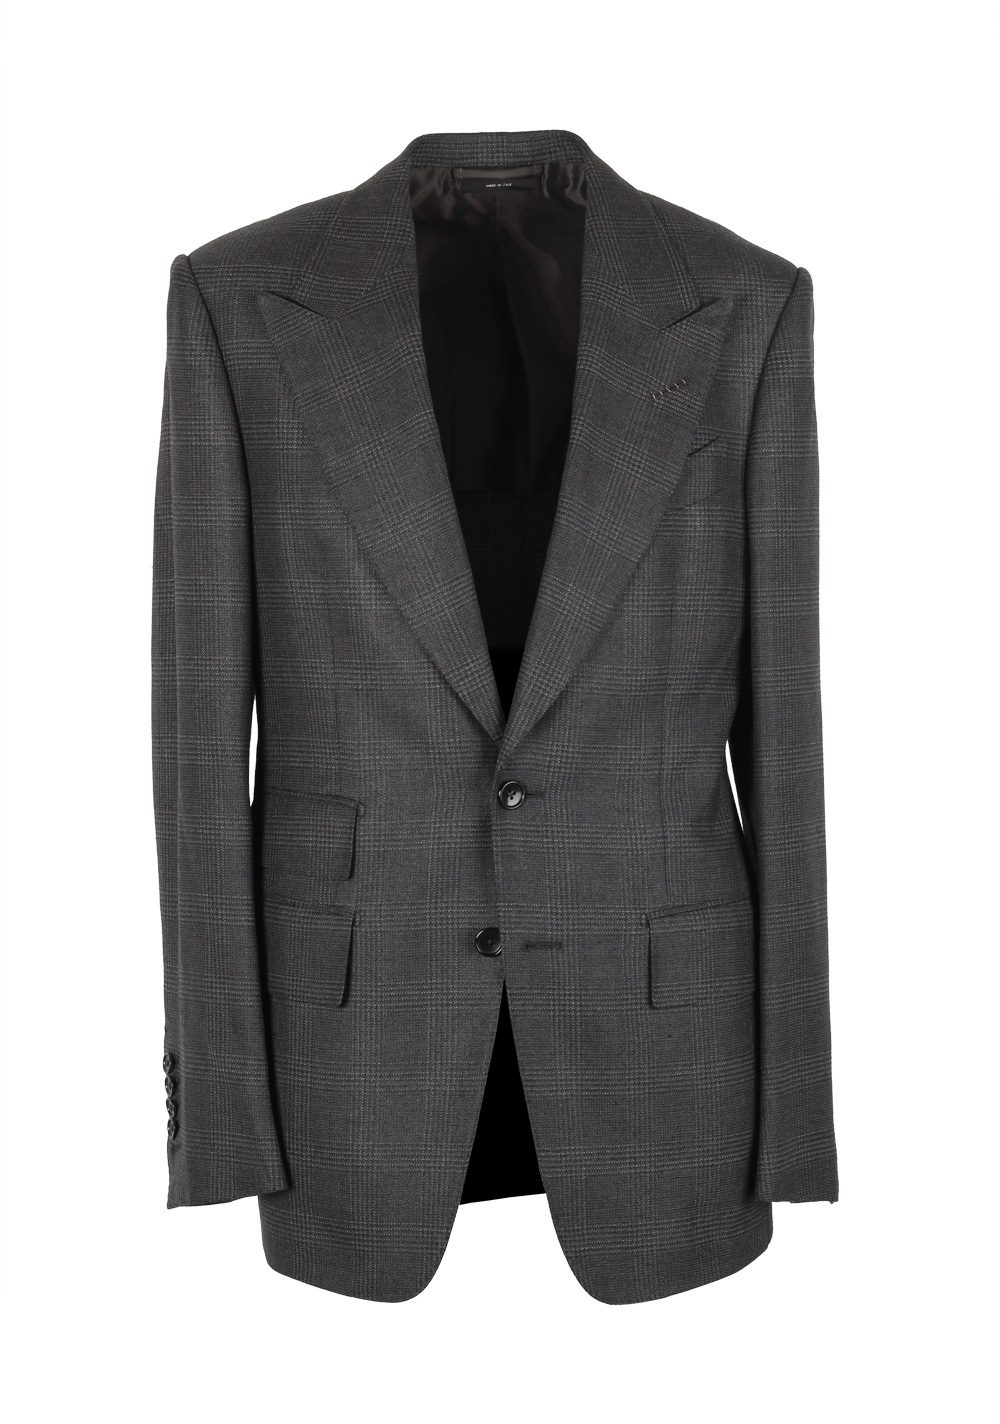 Dec 21, · When you wear a suit jacket, the sleeves should go down past an inch or an inch and a half from your wrist. That way, when you bend your arms, the sleeves are just comfortable and of good length (not too short).Status: Resolved.